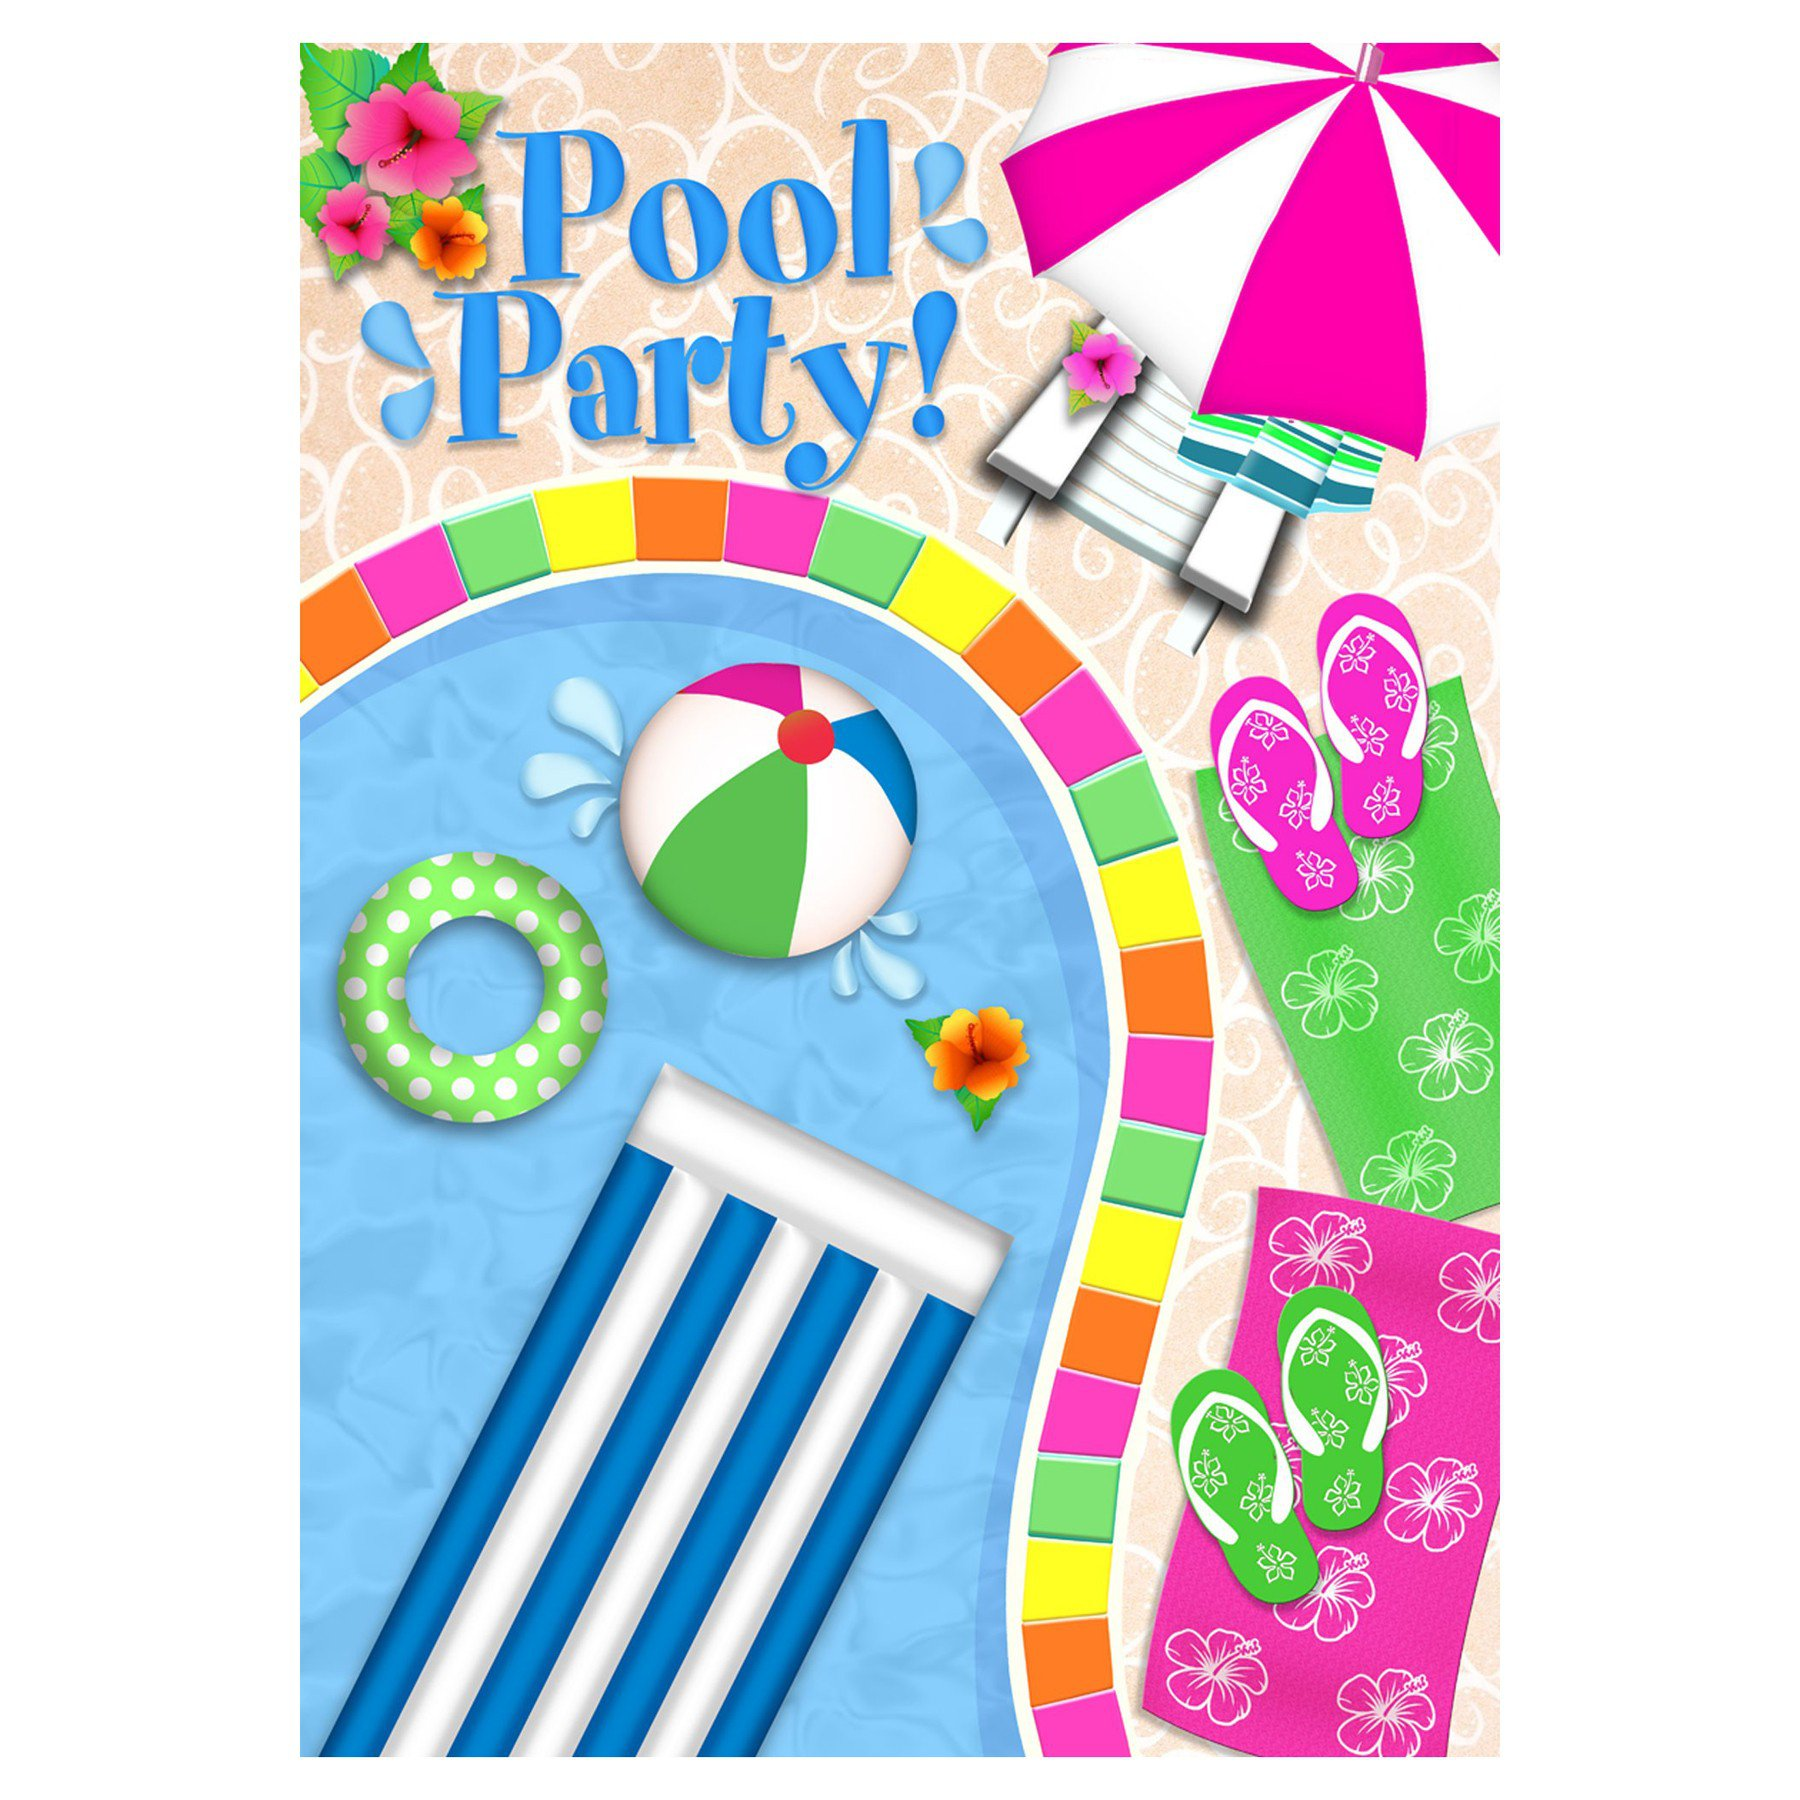 Pool Party Clip Art Pictures